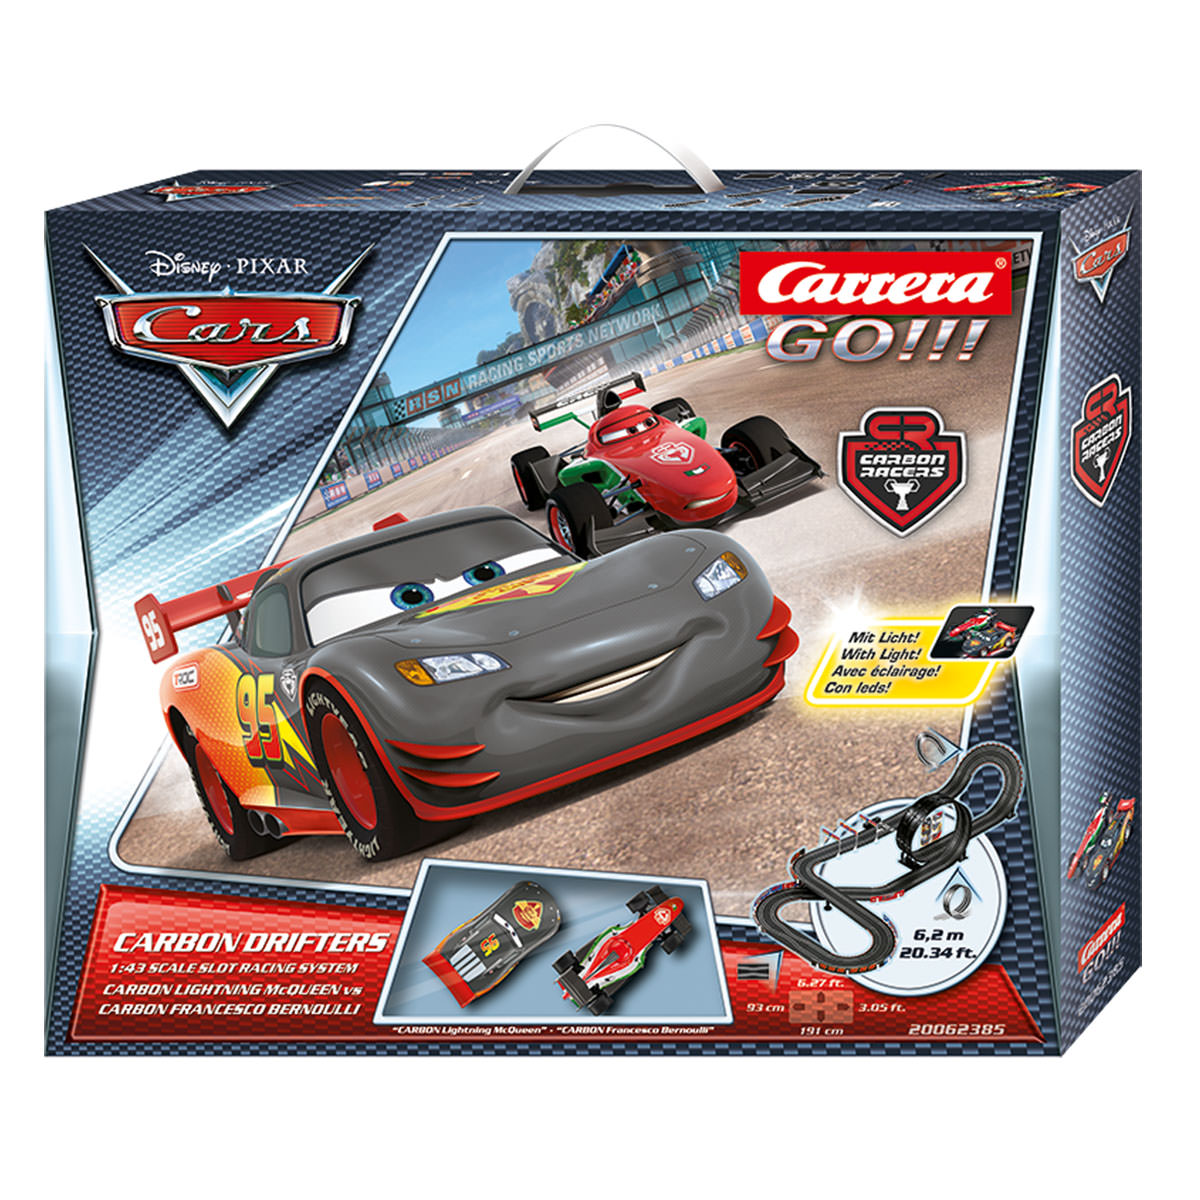 carrera go disney cars carbon drifters 1 43 scale slot racing set at hobby warehouse. Black Bedroom Furniture Sets. Home Design Ideas